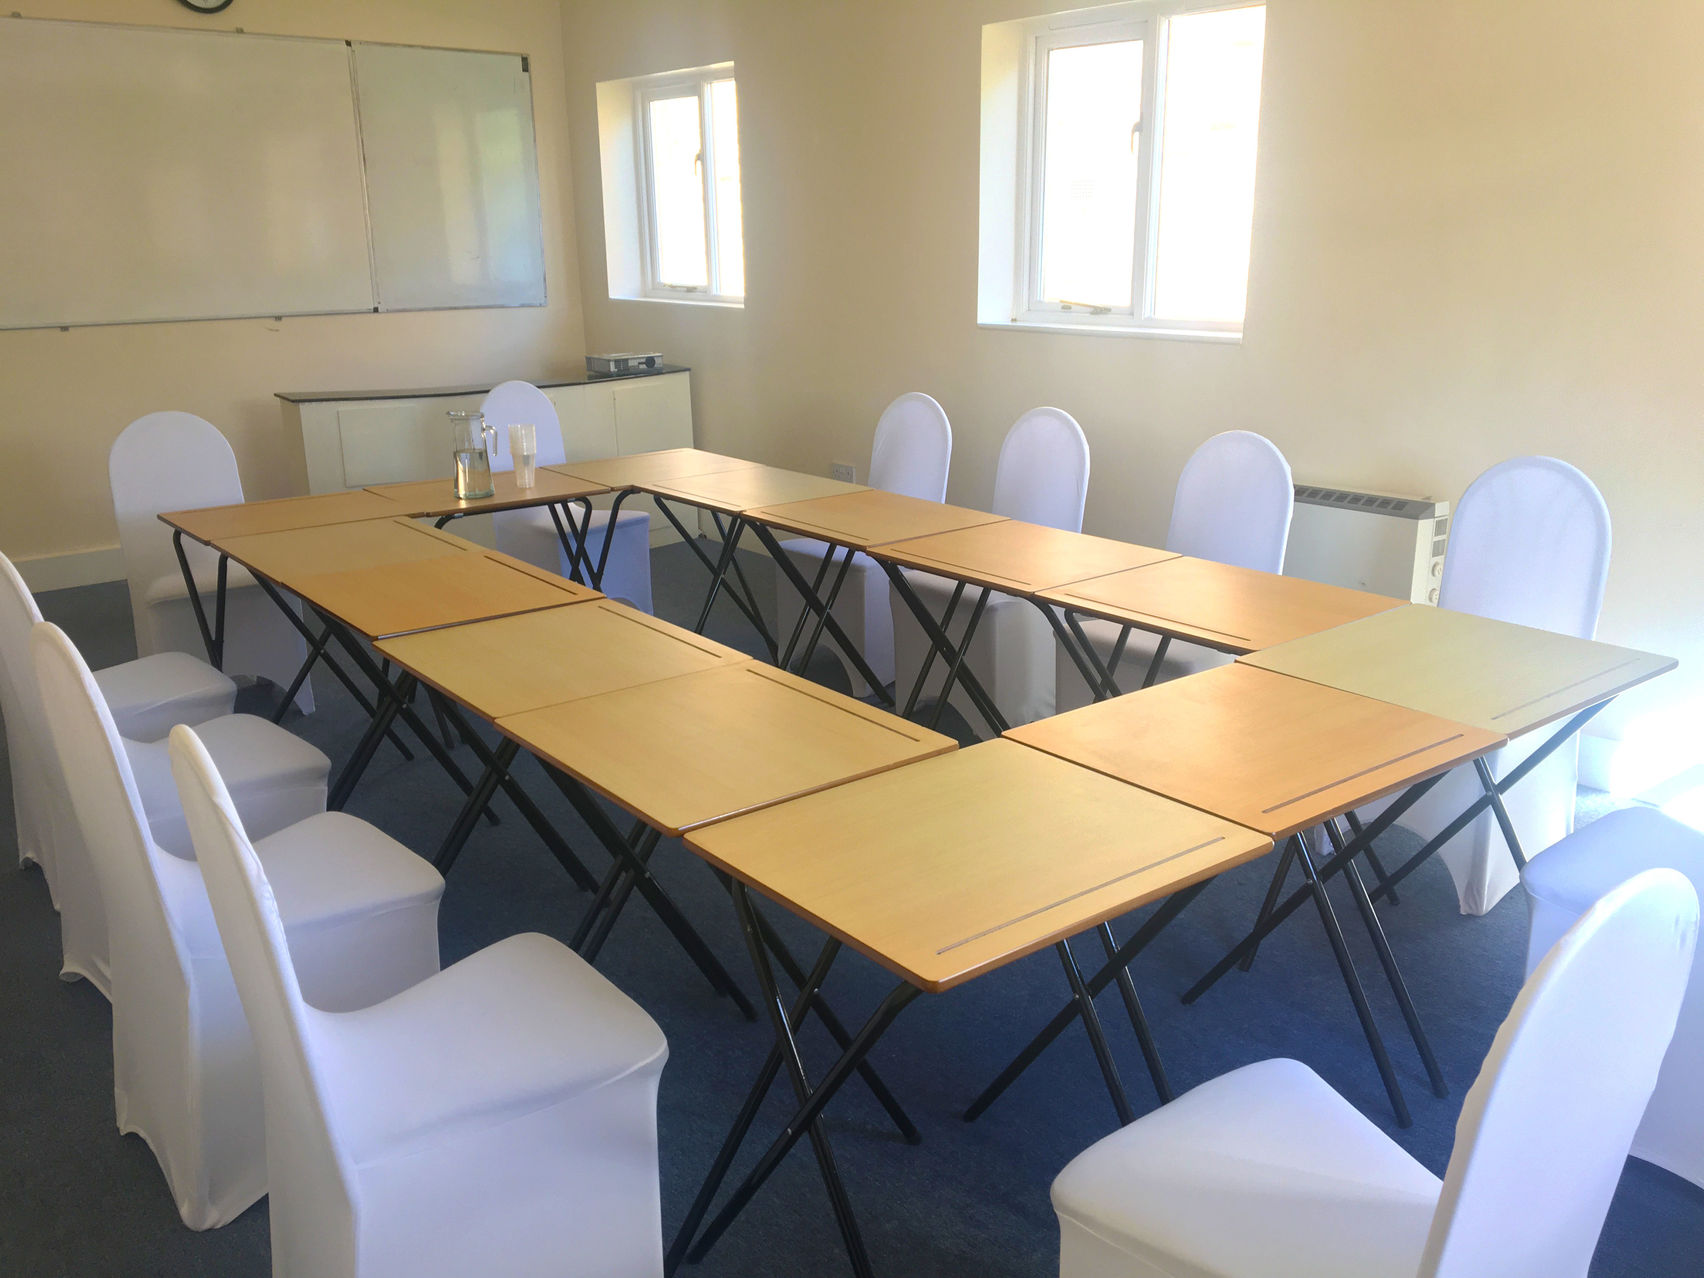 Meeting/Classroom 101, North London Meeting Centre